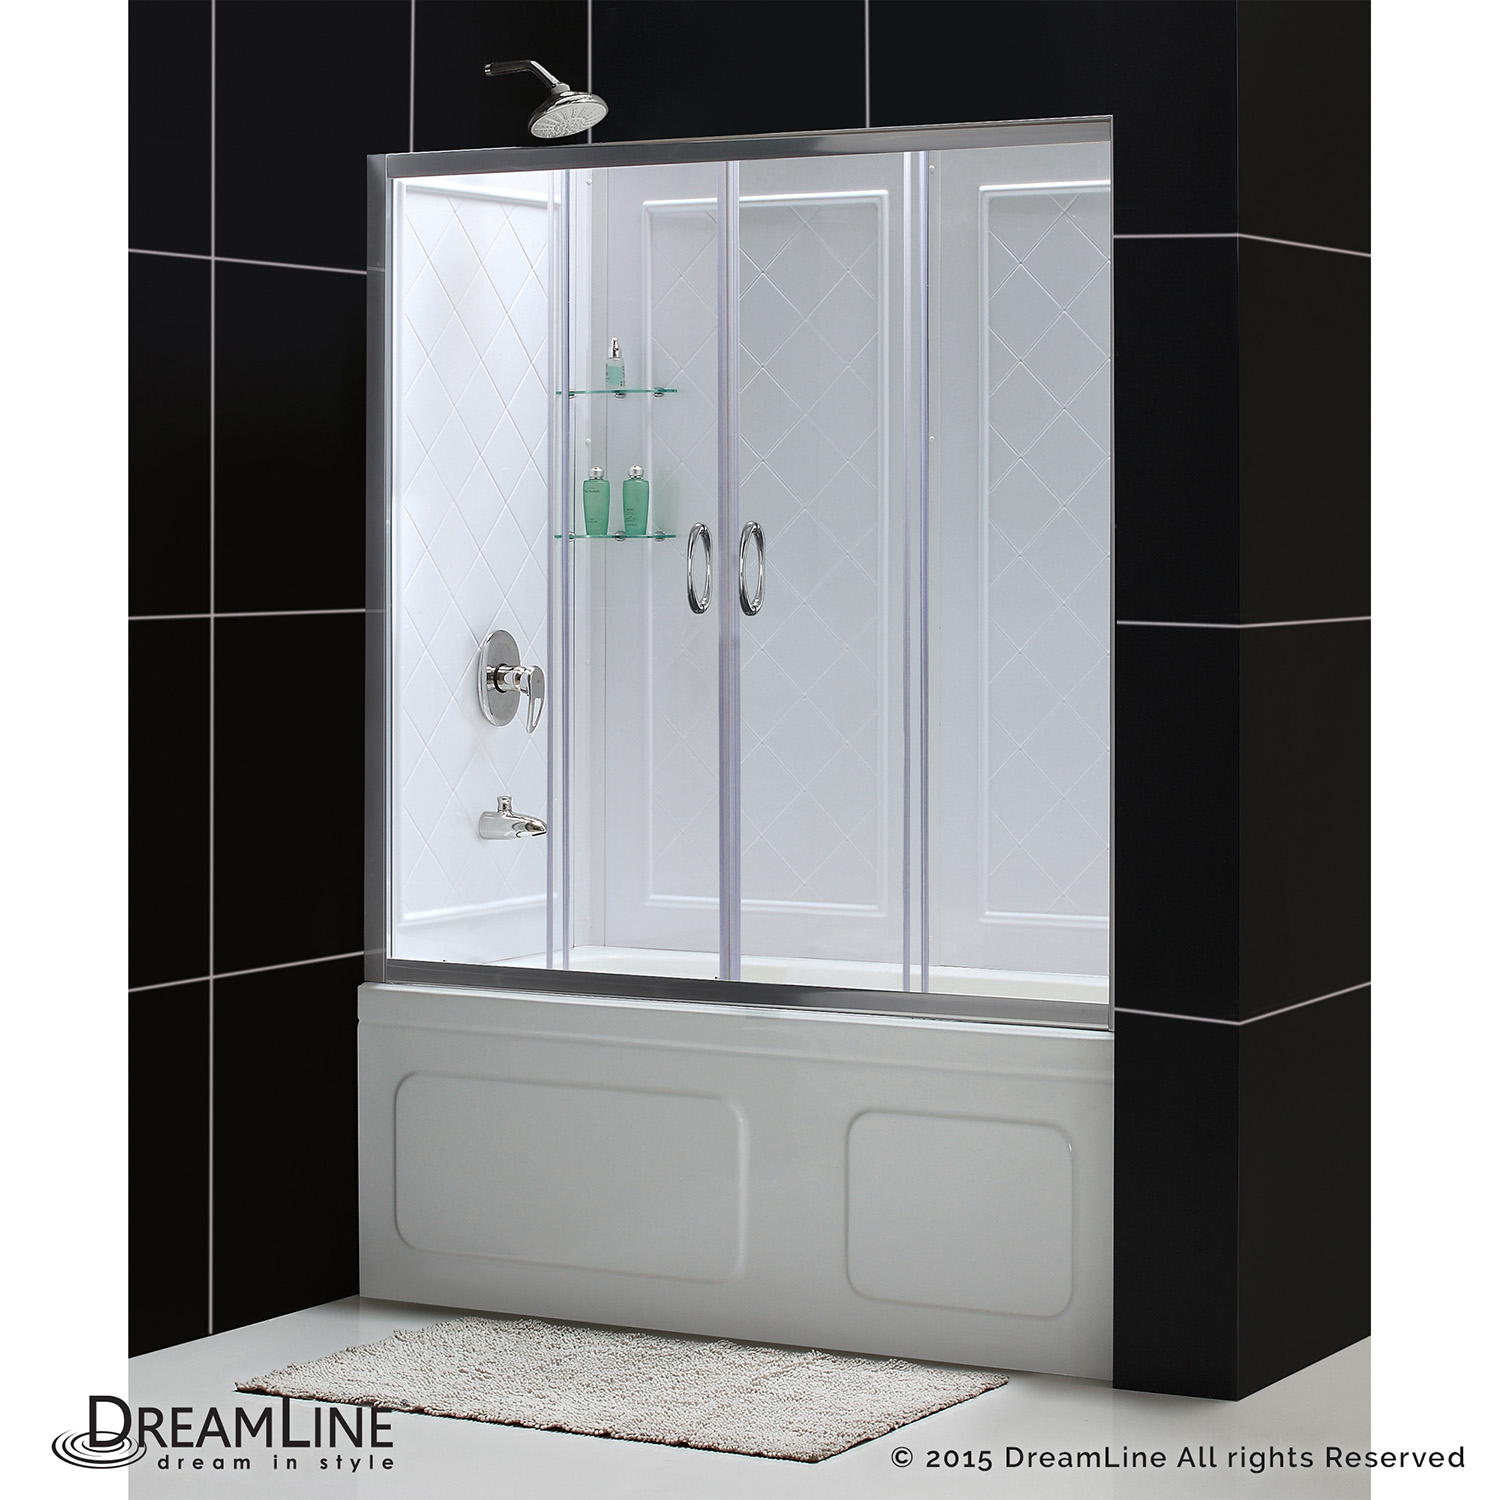 Bath4all Dreamline Dl 6995 04cl Visions 56 To 60 Frameless